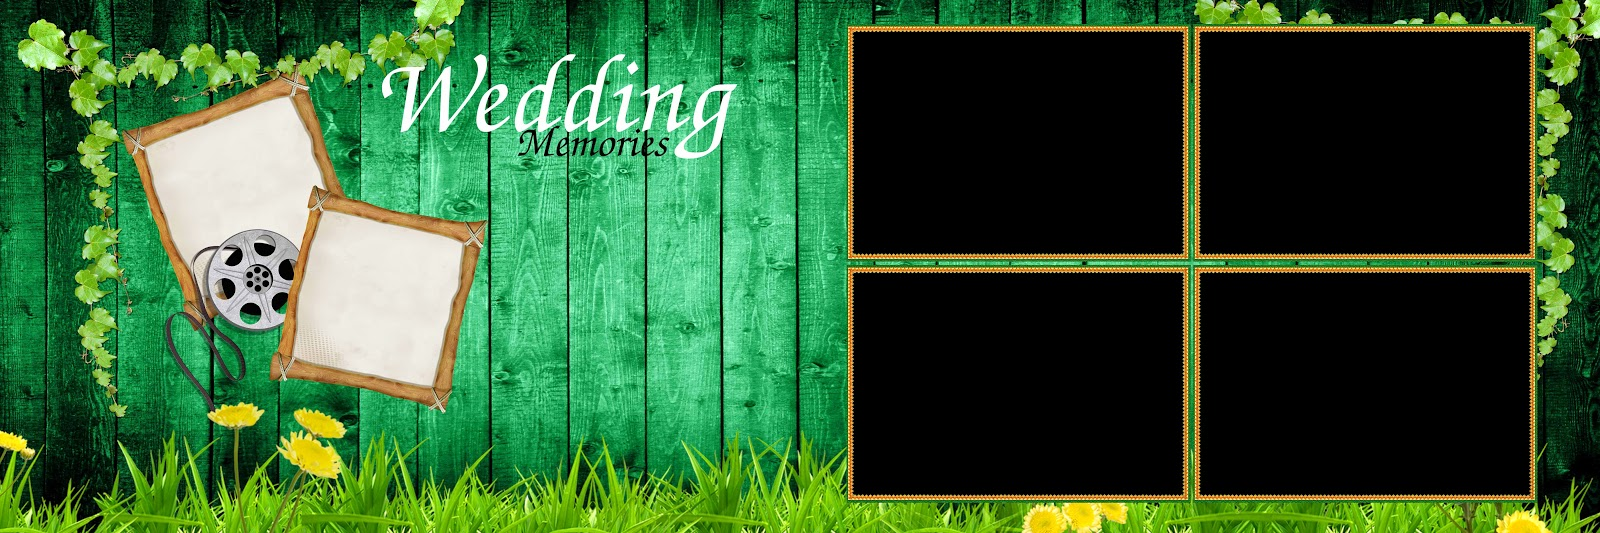 Free Photo Backgrounds High Resolution Wallpapers Templates Collection Updated Daily Karishma Al Frames